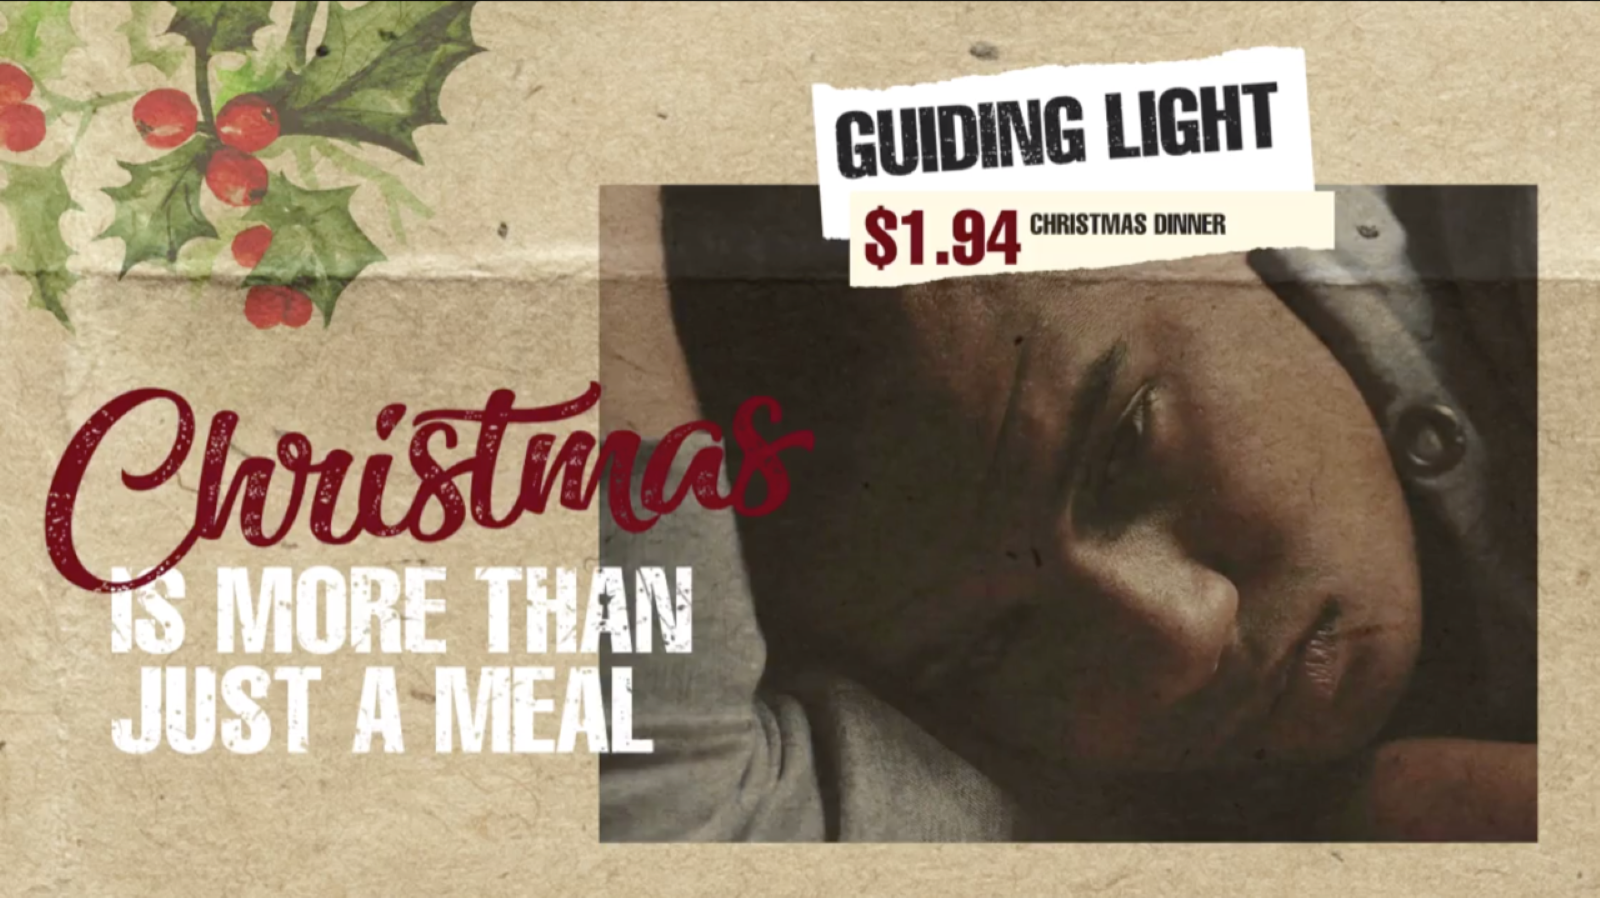 Help provides a complete Christmas meal for those who are hungry.  image